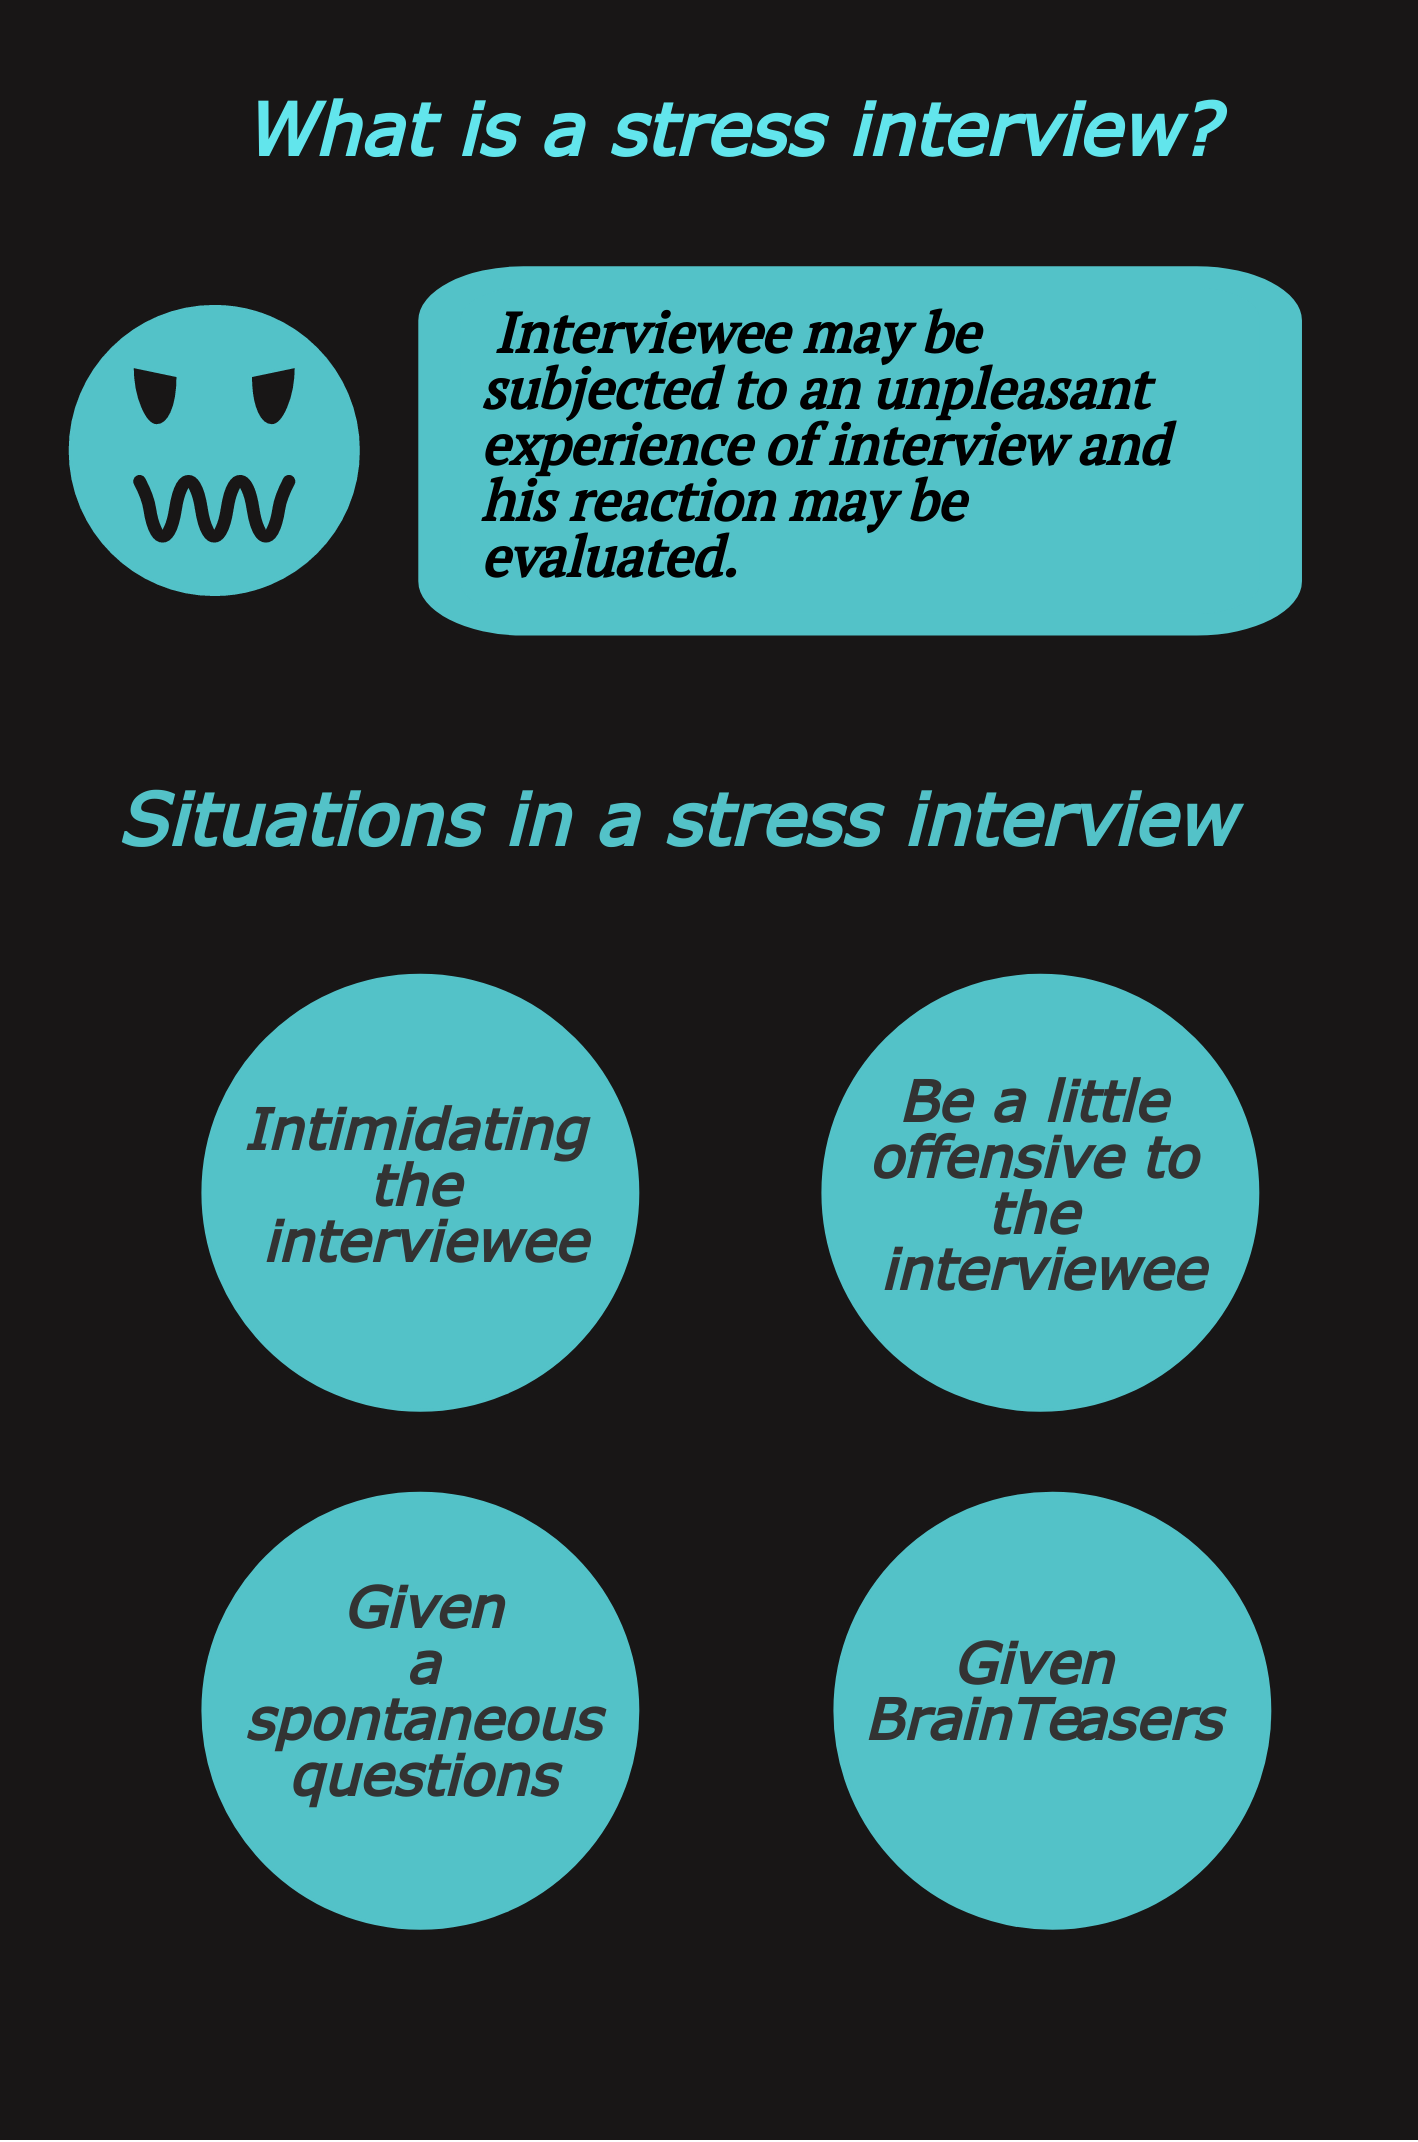 Easy tips and smart ways to answer stress interview questions